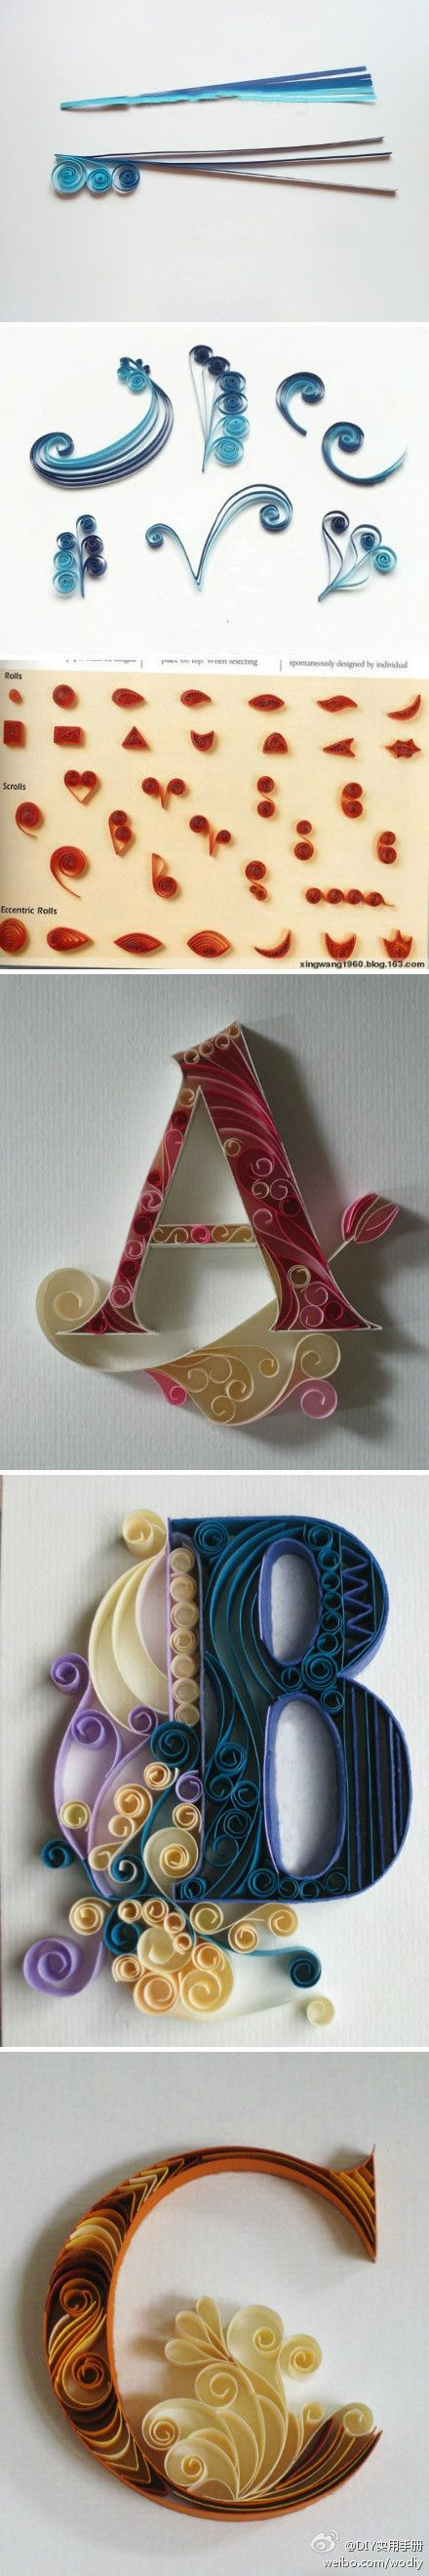 quilling - love these - makes me want to try my hand at quilling!